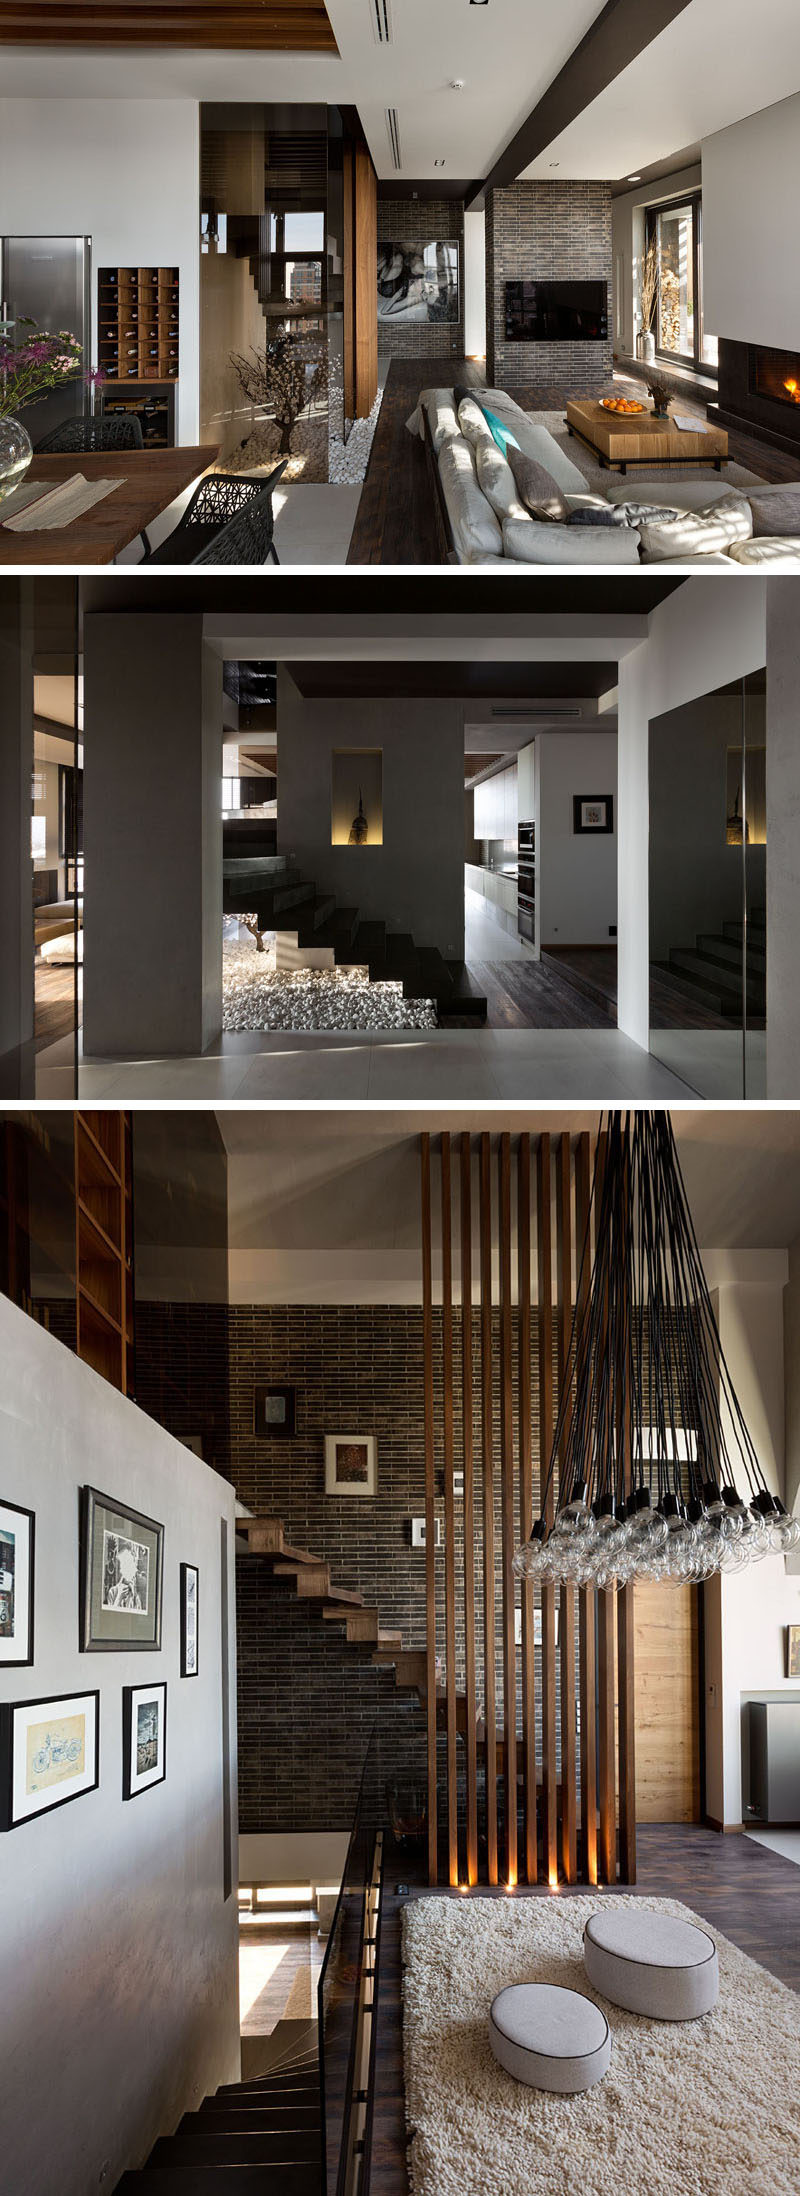 A centrally located wood staircase that connects all three floors of this modern penthouse apartment. #WoodStairs #Stairs